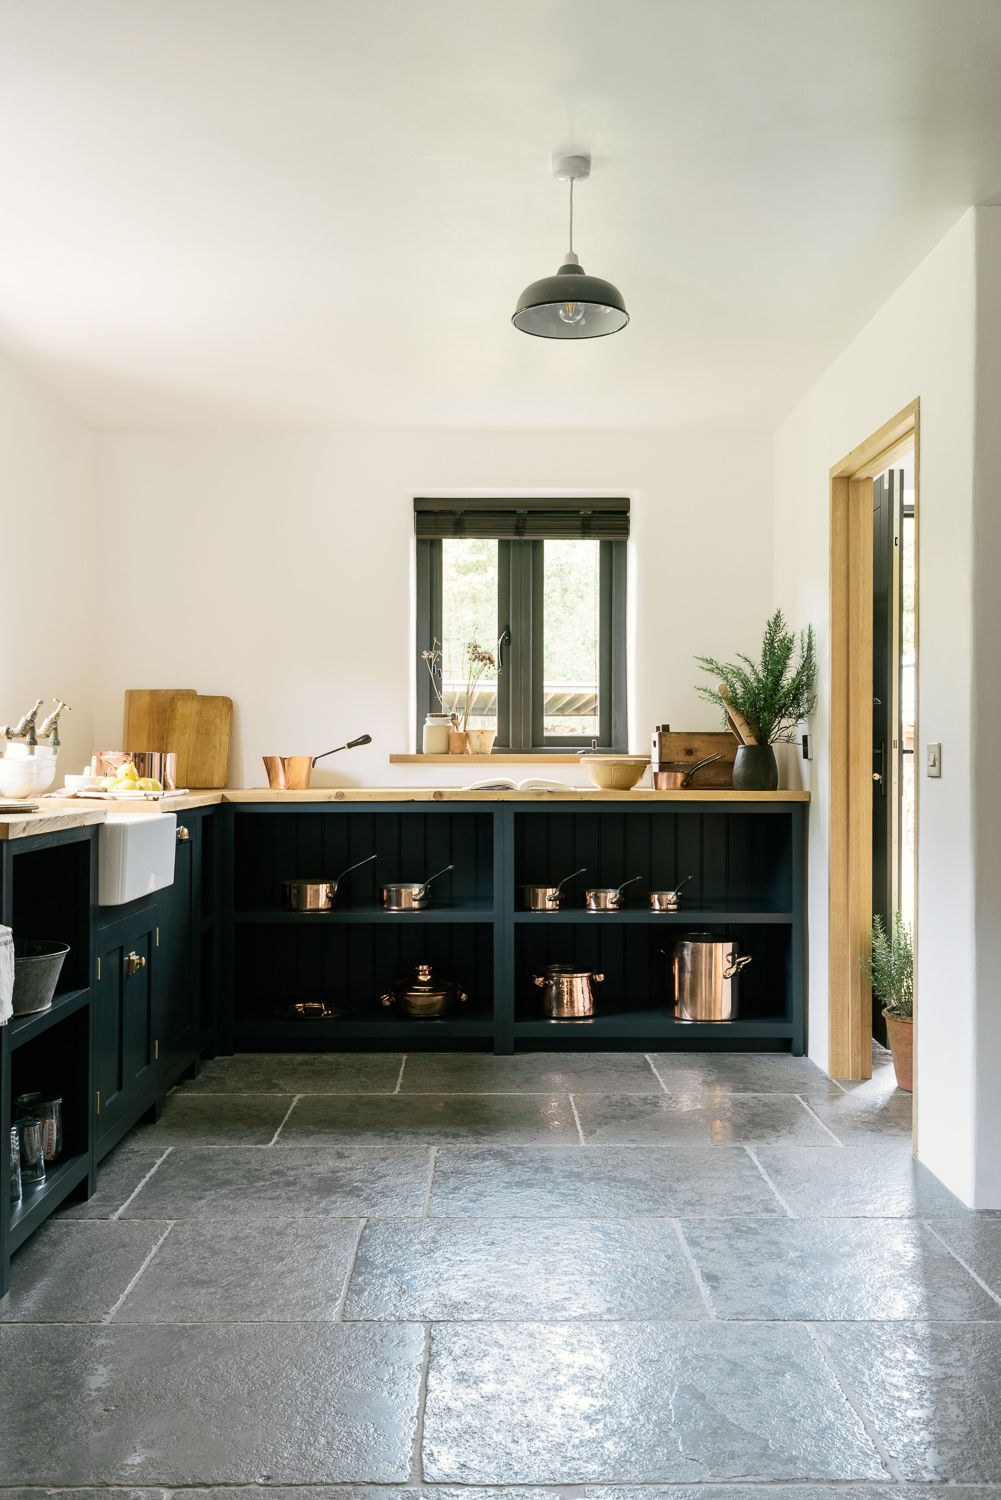 Bon The Worn Grey Limestone By Floors Of Stone Works So Perfectly In This  Stylish DeVOL Kitchen